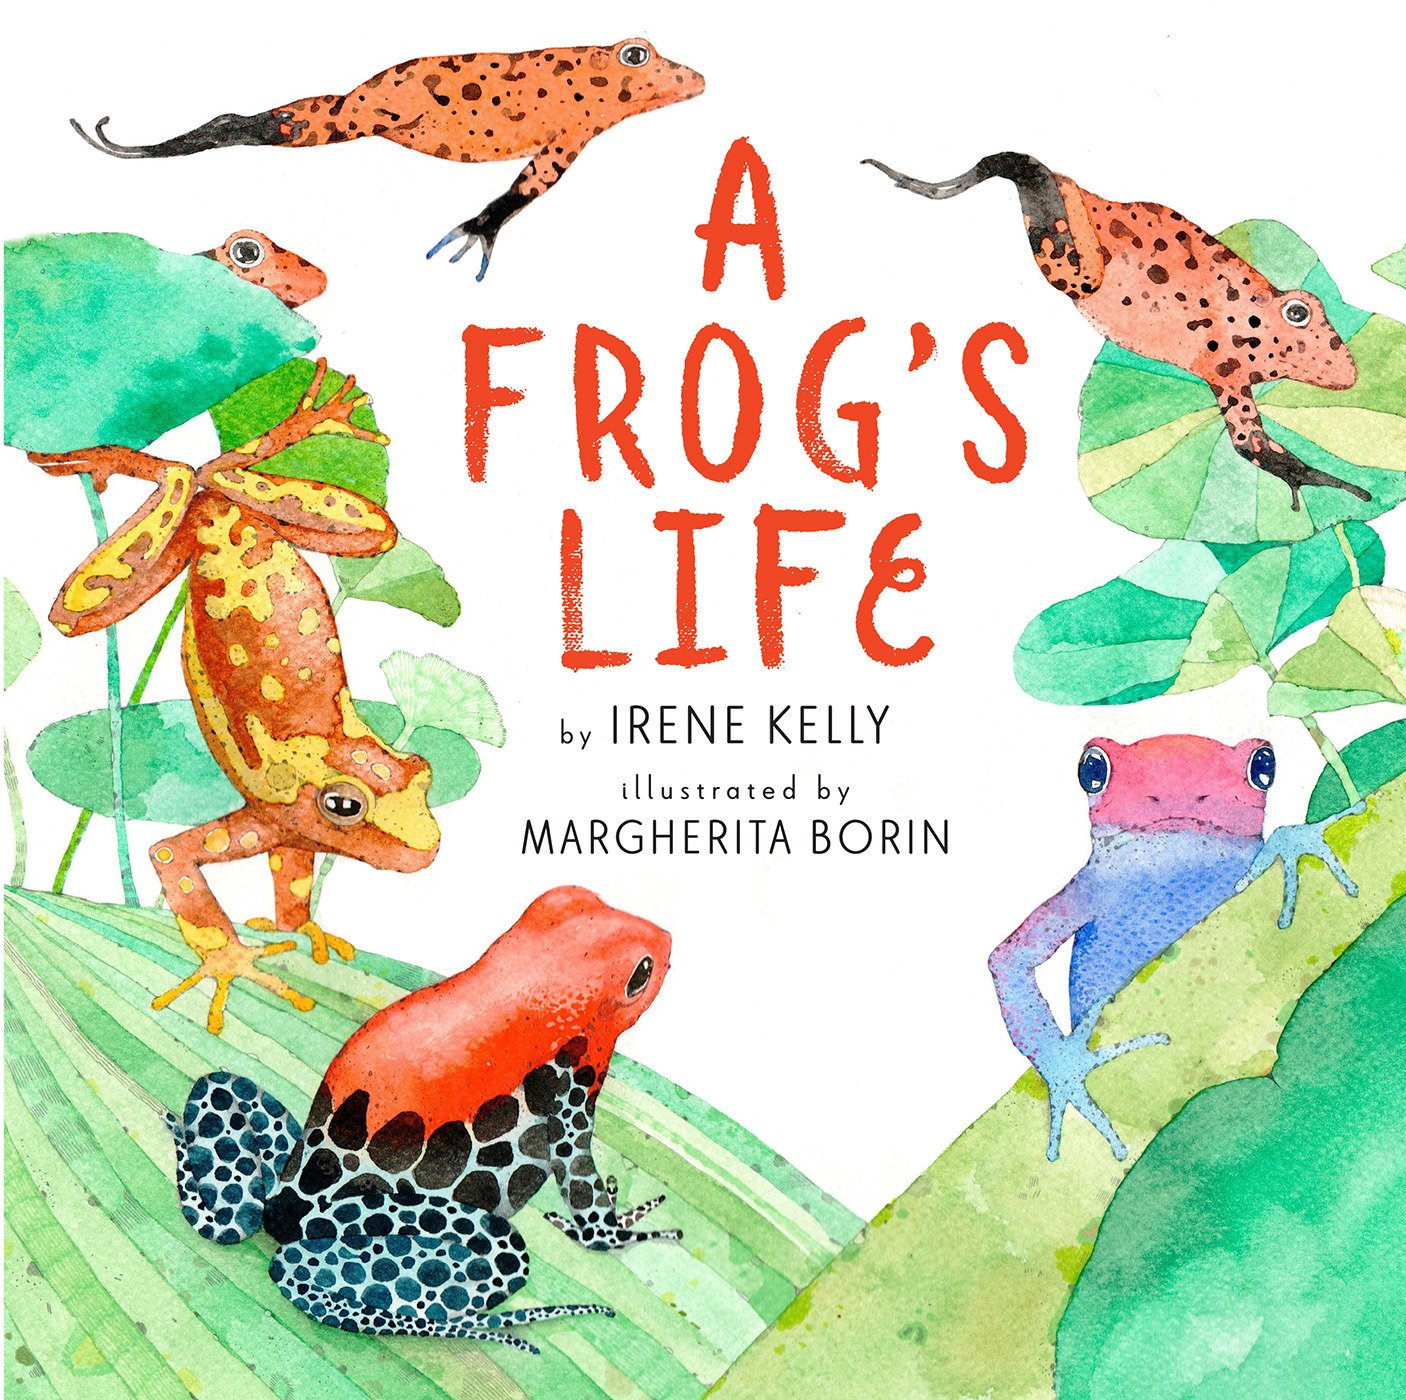 A Frog's Life by Irene Kelly | SLJ Review